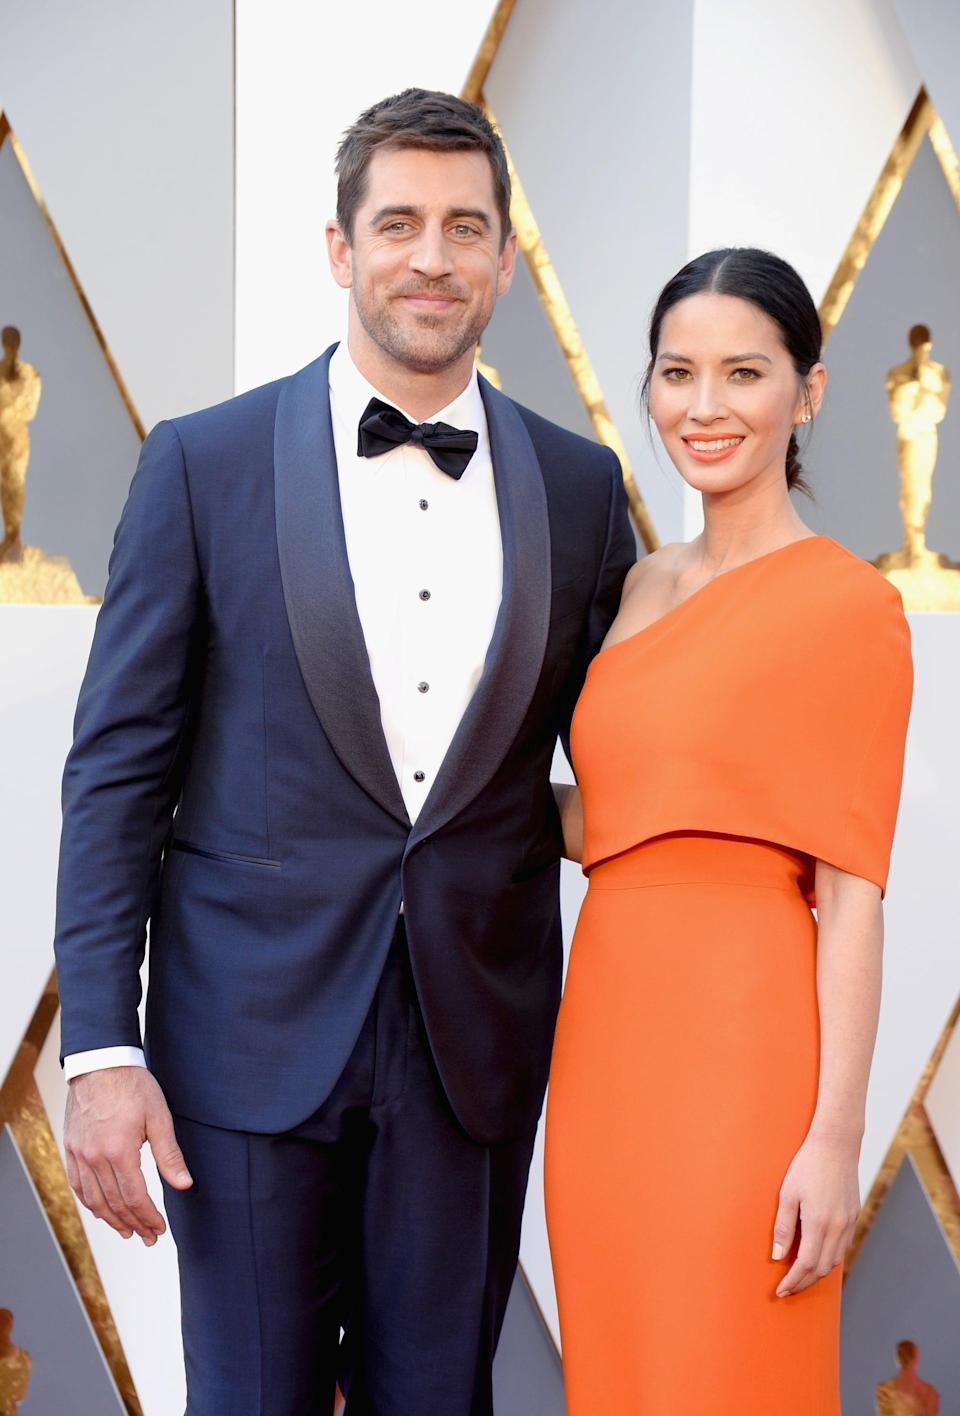 """<p><a href=""""https://www.popsugar.com/celebrity/Olivia-Munn-Aaron-Rodgers-Break-Up-43404229"""" class=""""link rapid-noclick-resp"""" rel=""""nofollow noopener"""" target=""""_blank"""" data-ylk=""""slk:Olivia and Aaron were together for three years"""">Olivia and Aaron were together for three years</a> before they went their separate ways in April 2017. According to <strong>People</strong>, <a href=""""https://people.com/celebrity/olivia-munn-aaron-rodgers-split/?xid=Popsugar"""" class=""""link rapid-noclick-resp"""" rel=""""nofollow noopener"""" target=""""_blank"""" data-ylk=""""slk:their split was amicable"""">their split was amicable</a> and they remain """"close friends."""" <a href=""""https://www.popsugar.com/celebrity/aaron-rodgers-engaged-shailene-woodley-48152702"""" class=""""link rapid-noclick-resp"""" rel=""""nofollow noopener"""" target=""""_blank"""" data-ylk=""""slk:Aaron is now engaged to Shailene Woodley"""">Aaron is now engaged to Shailene Woodley</a>. </p>"""